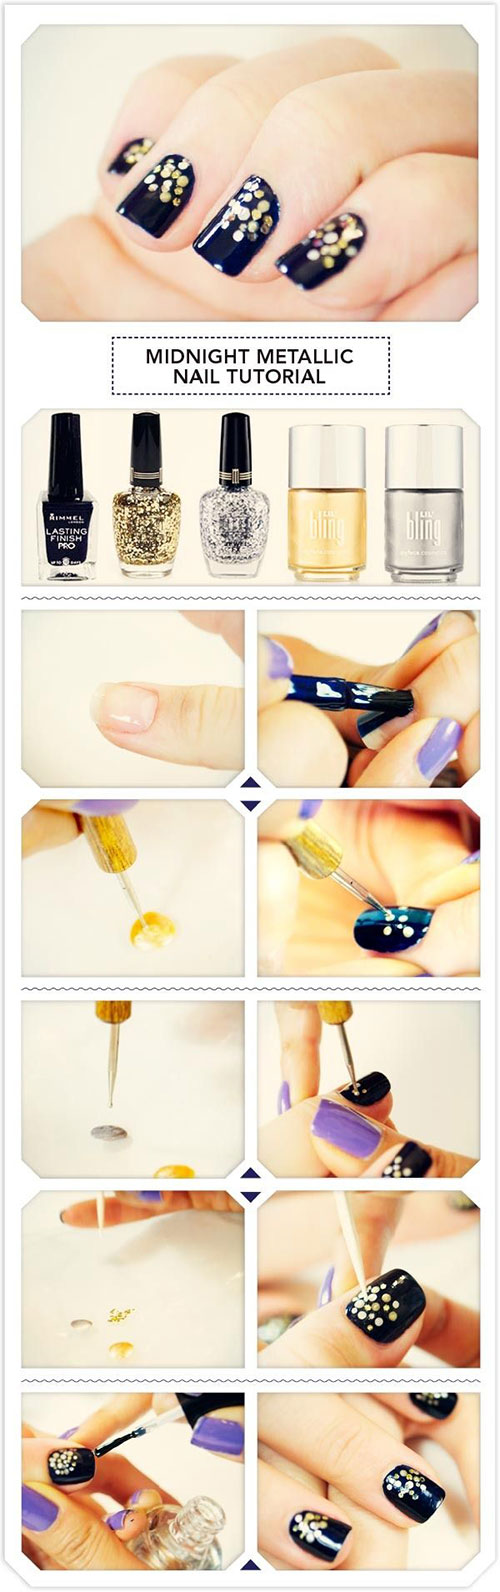 Easy-Simple-New-Year-Nail-Art-Tutorials-2013 -2014-For-Beginners-Learners-2